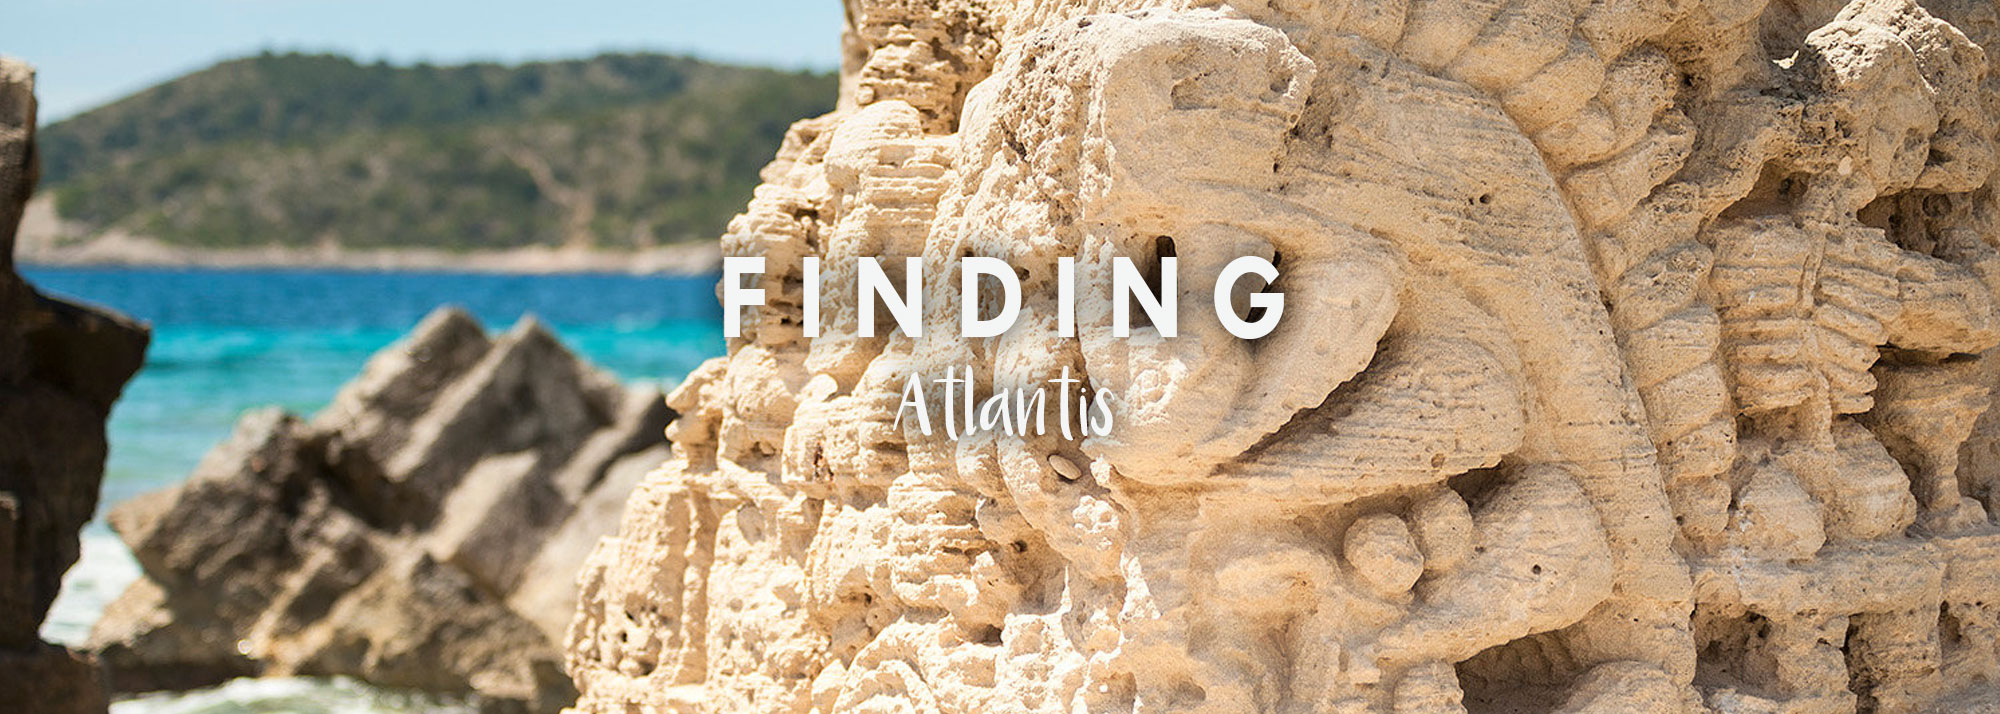 Finding atlantis with Lani James-Mufa